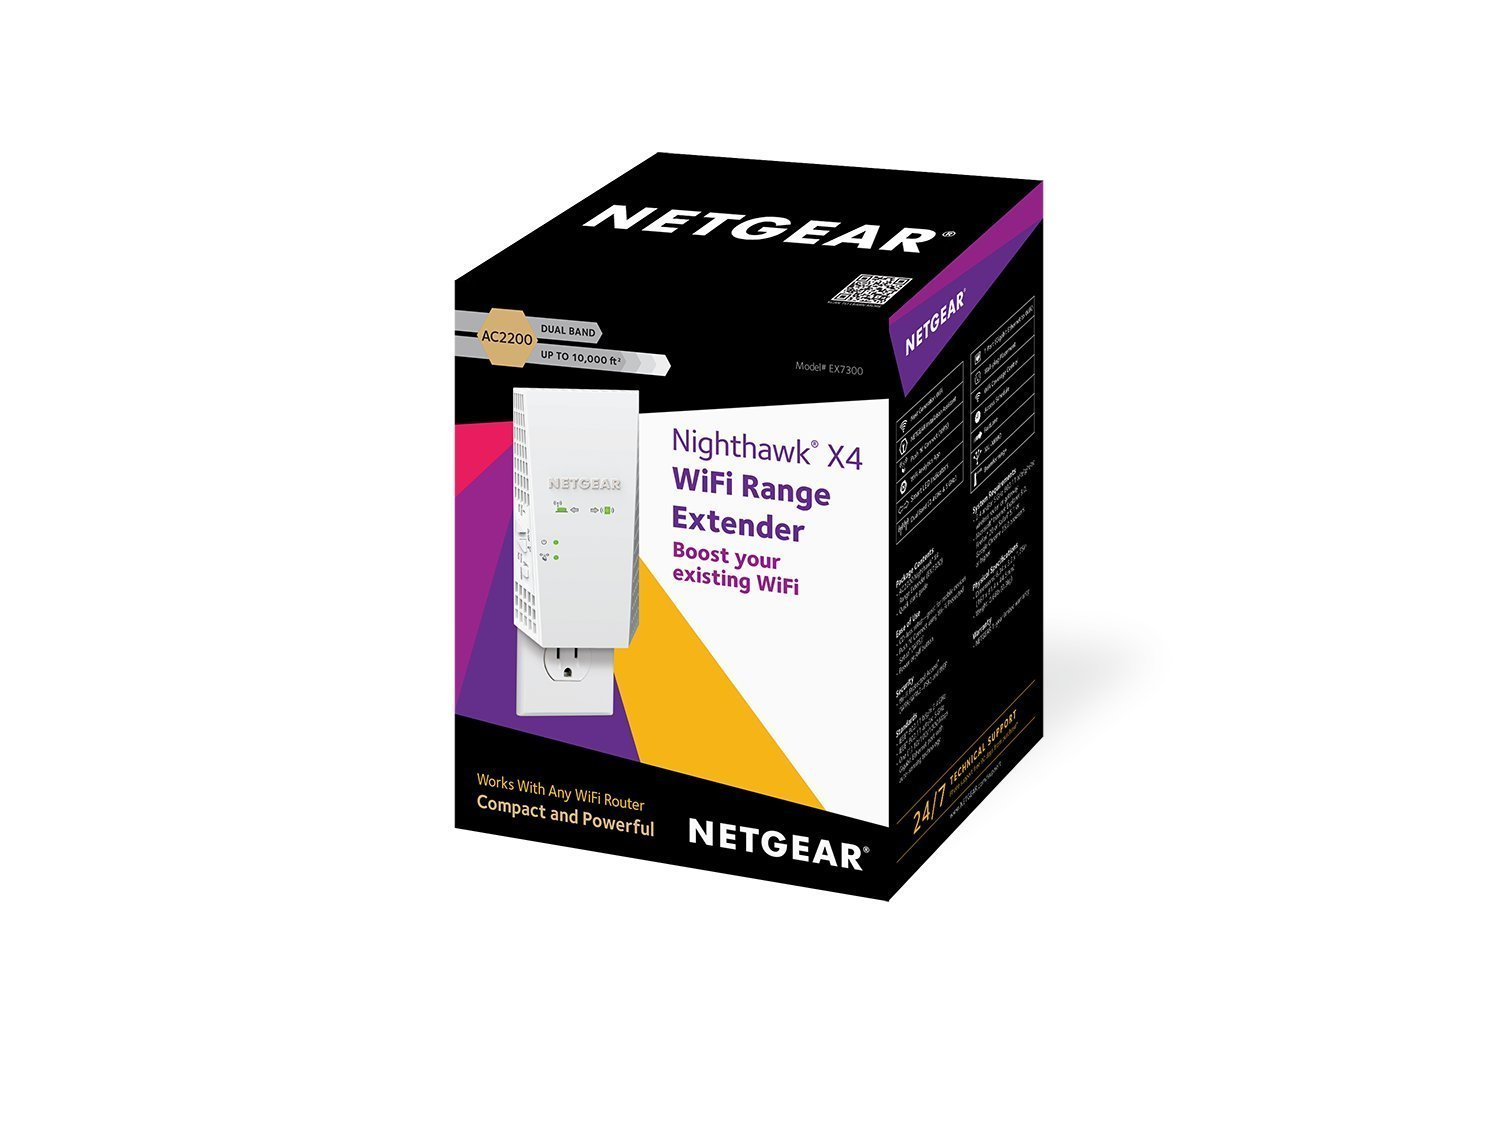 NETGEAR AC2200 Mesh WiFi Extender, Seamless Roaming, One WiFi Name, Works with Any WiFi Router. Create Your own Mesh WiFi System (EX7300) (Certified Refurbished) by NETGEAR (Image #7)